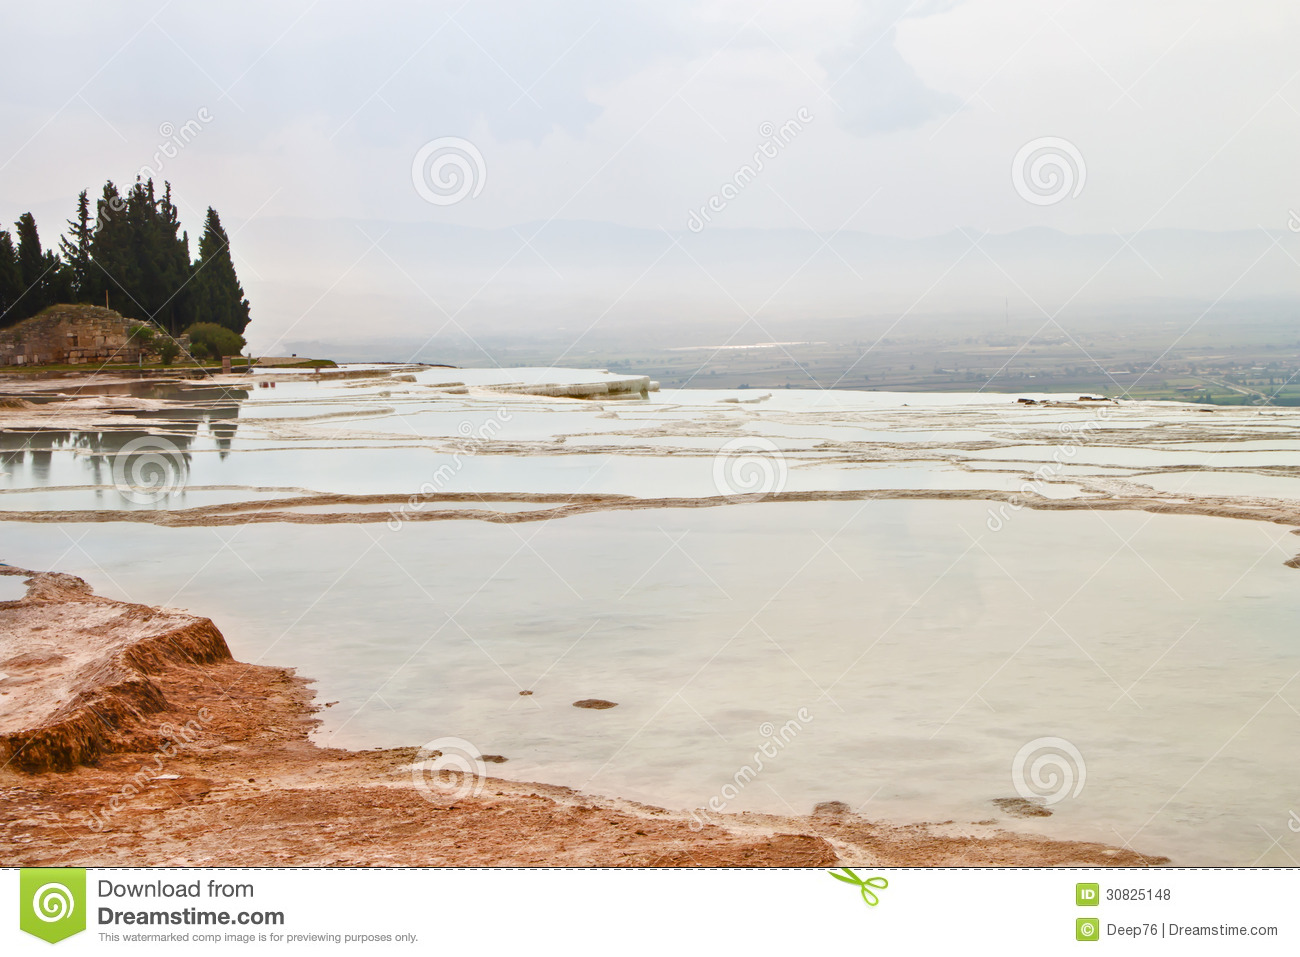 Foto del travertino di Pamukkale